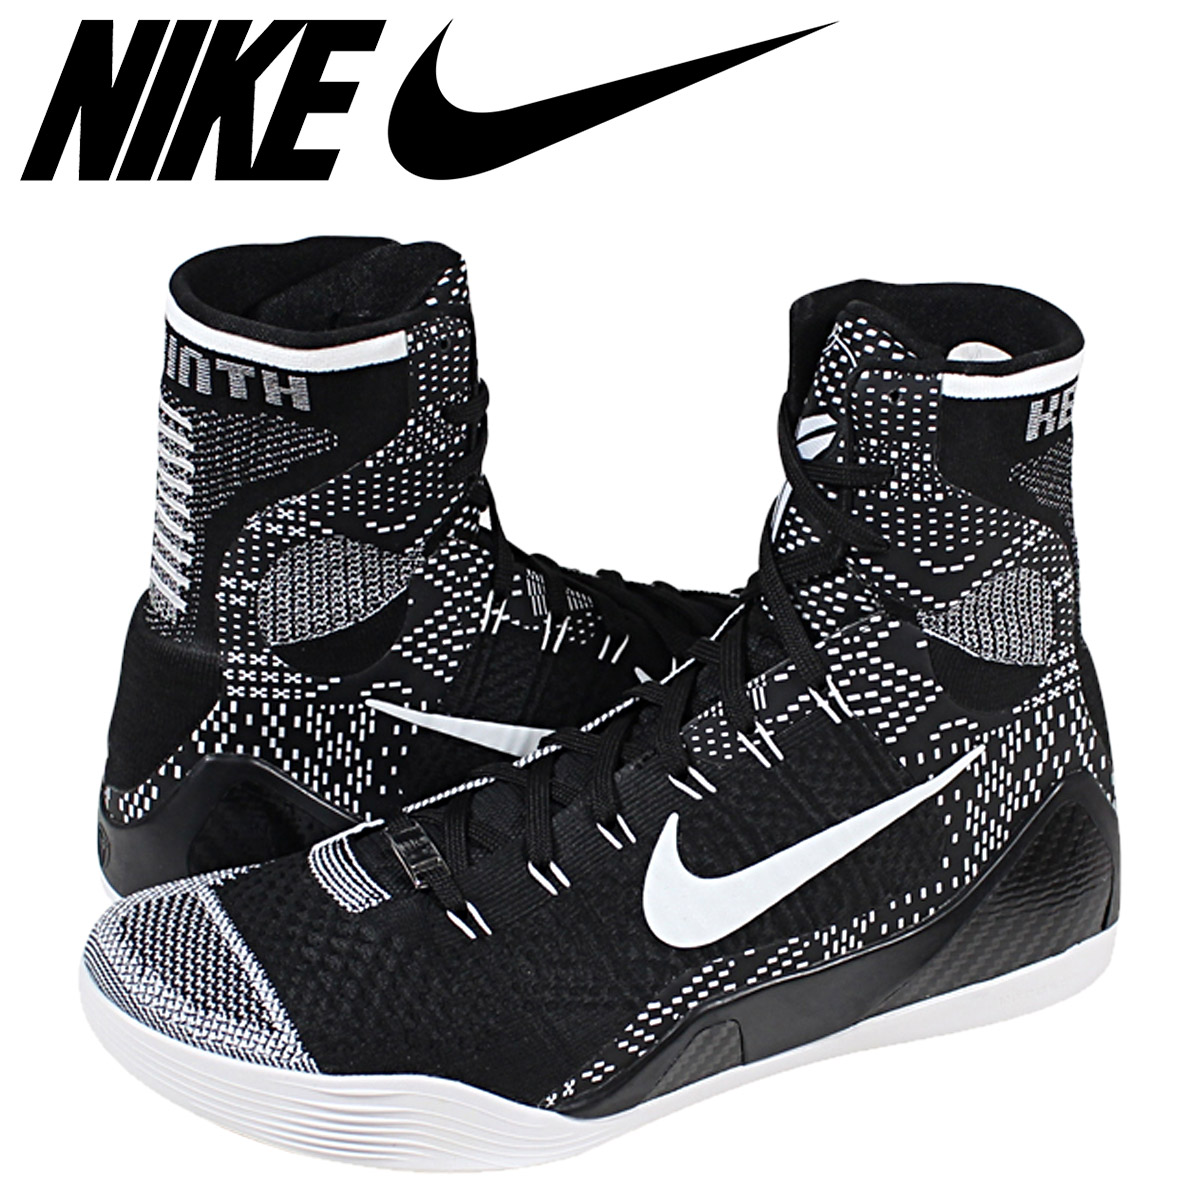 100% authentic d3bd4 4c72a NIKE Nike sneakers KOBE 9 ELITE HIGH BHM 704304-010 black mens ...